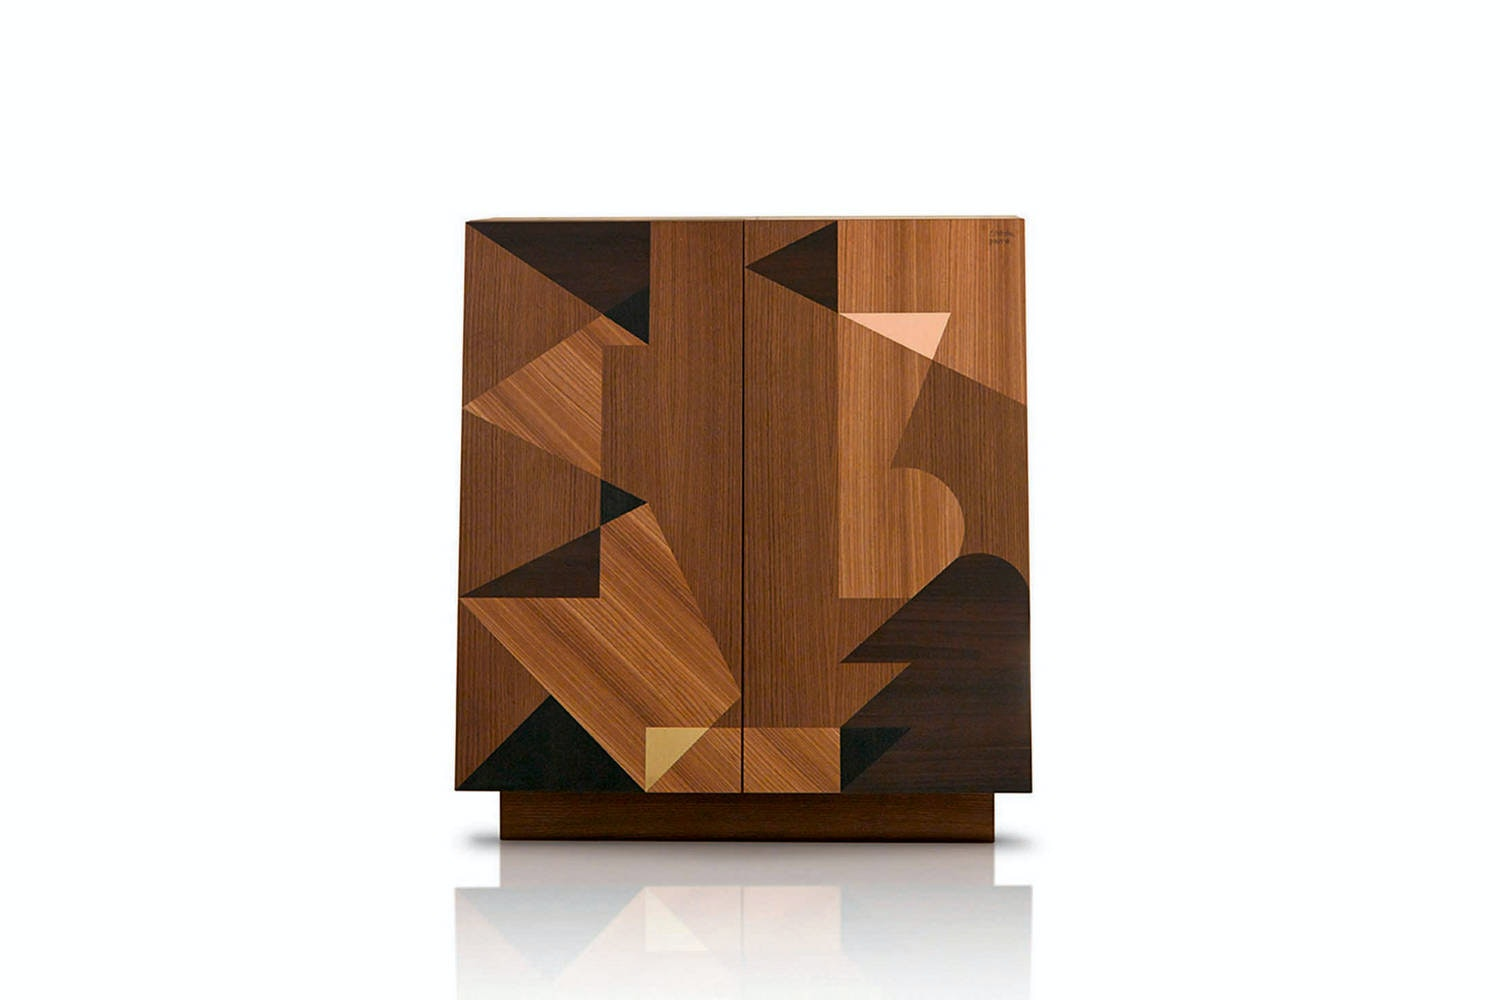 Schermo Cupboard by Alessandro Mendini for Porro